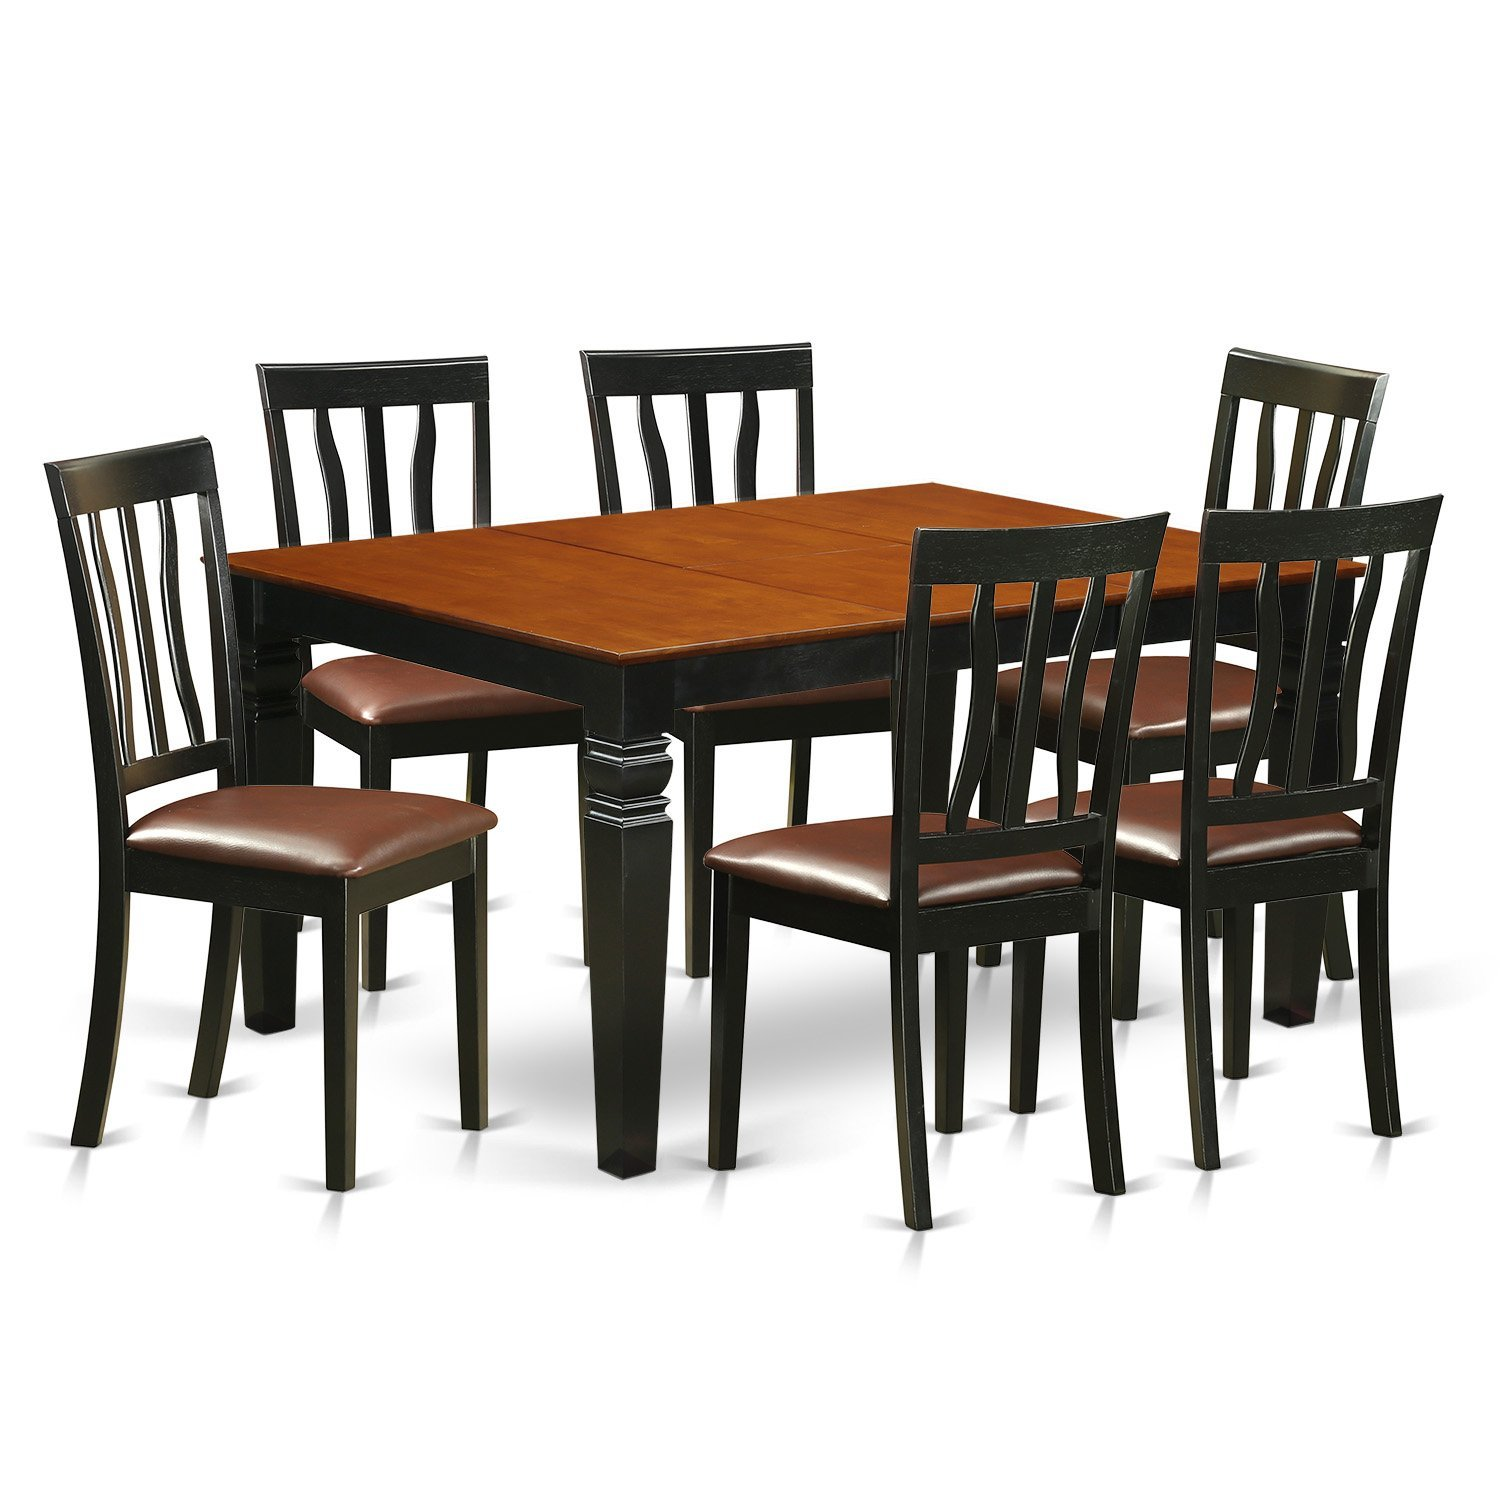 East West Furniture Weston WEAN7-BCH-LC 7 Pc Set with a Dining Table and 6 Leather Kitchen Chairs, Black